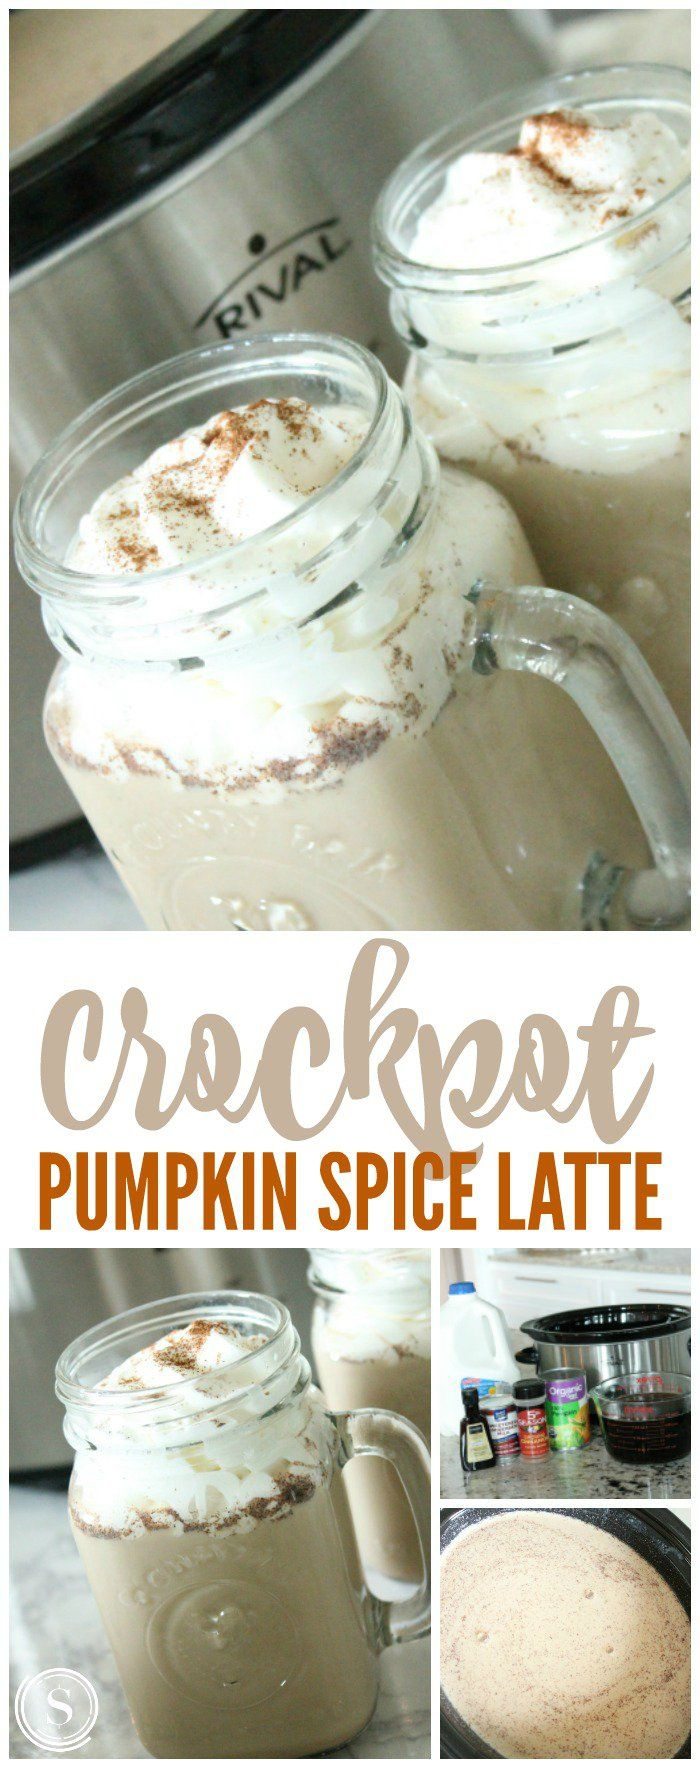 Crockpot Pumpkin Spice Latte Recipe - Passion For Savings